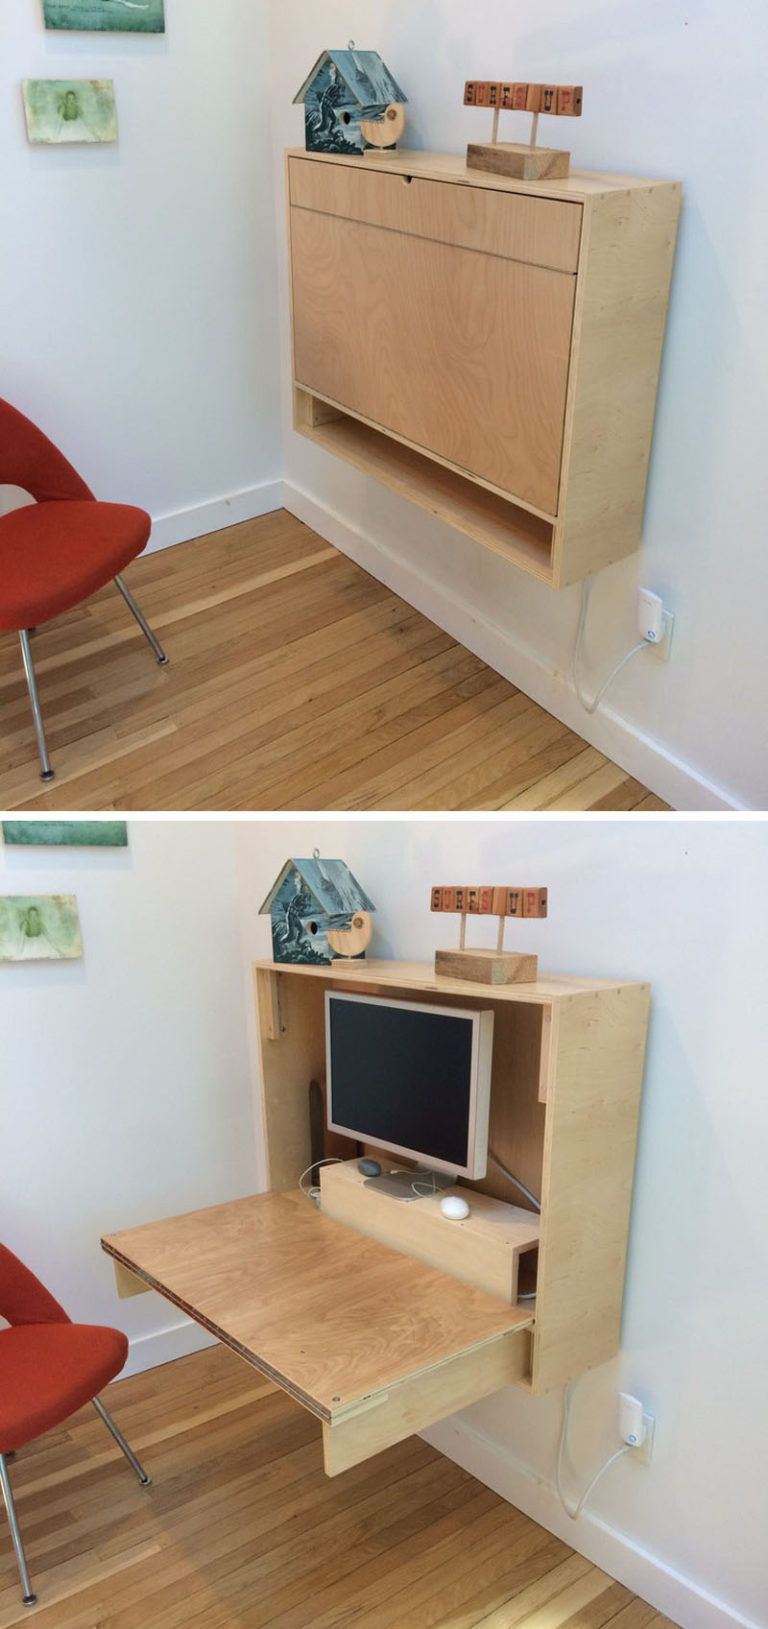 16 Wall Desk Ideas That Are Great For Small Spaces If You Re Feeling Ambitious You Can Desks For Small Spaces Furniture For Small Spaces Small Space Bedroom